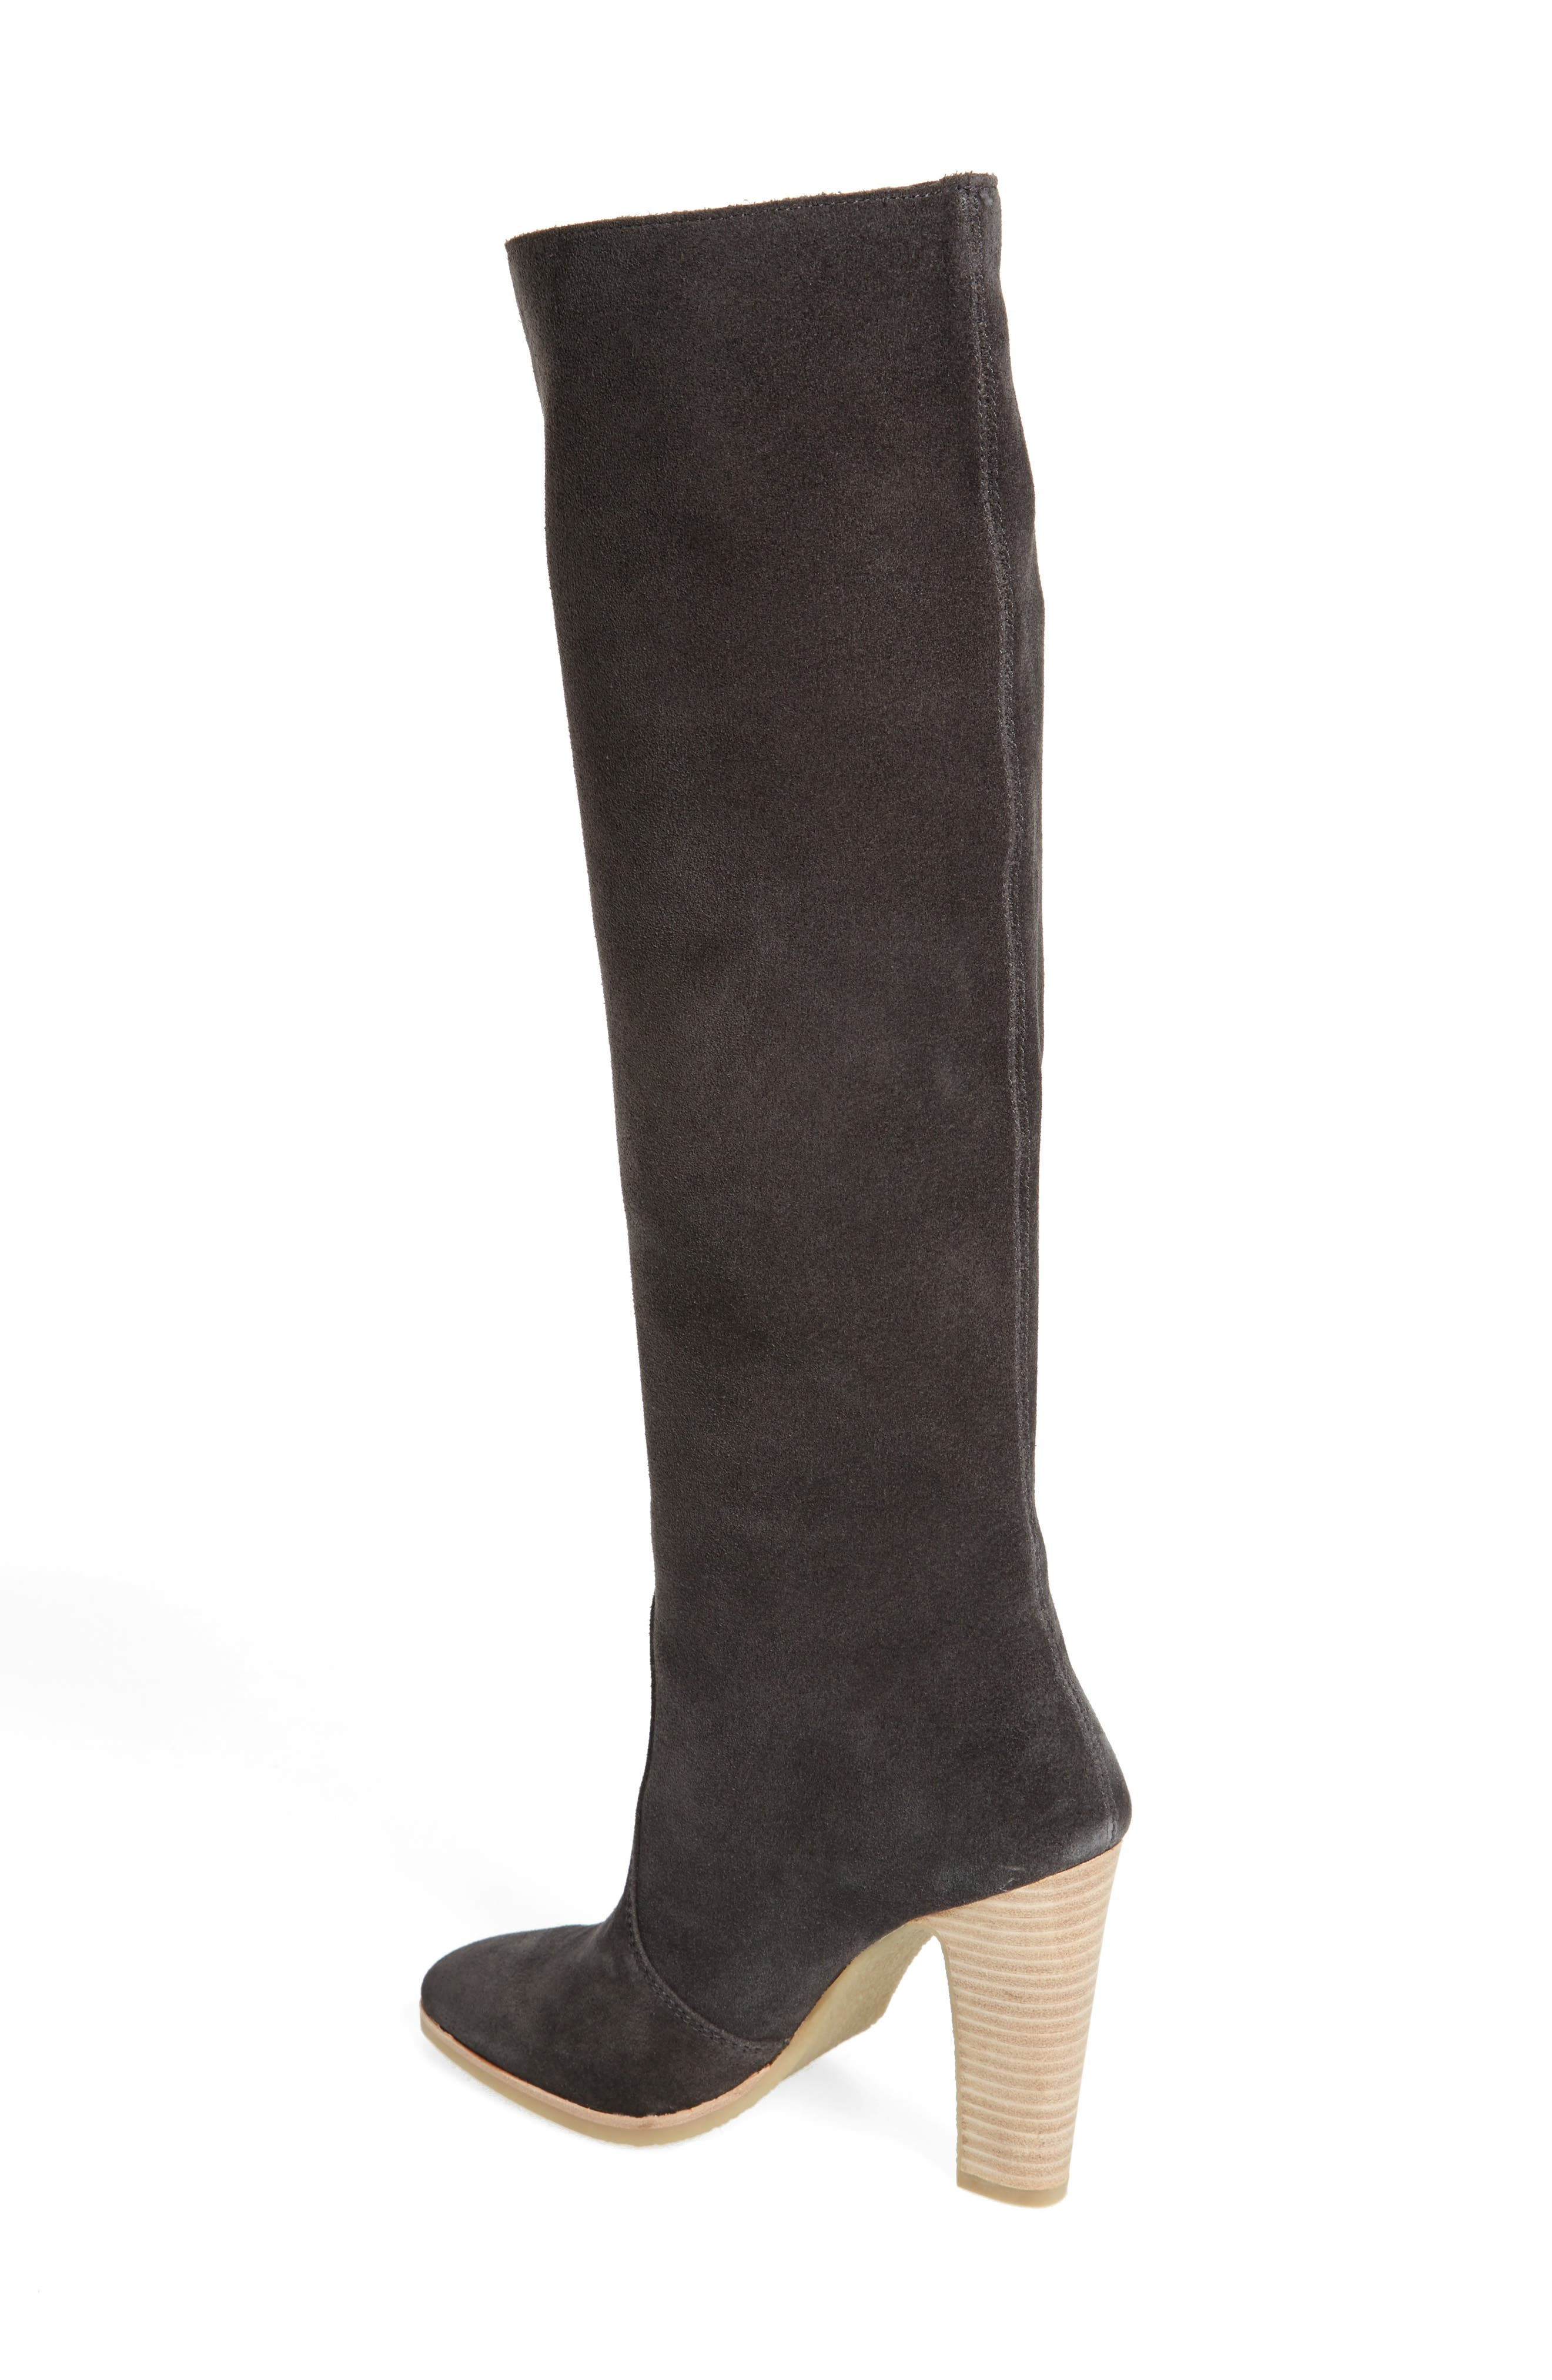 Celine Knee-High Boot,                             Alternate thumbnail 2, color,                             Anthracite Suede